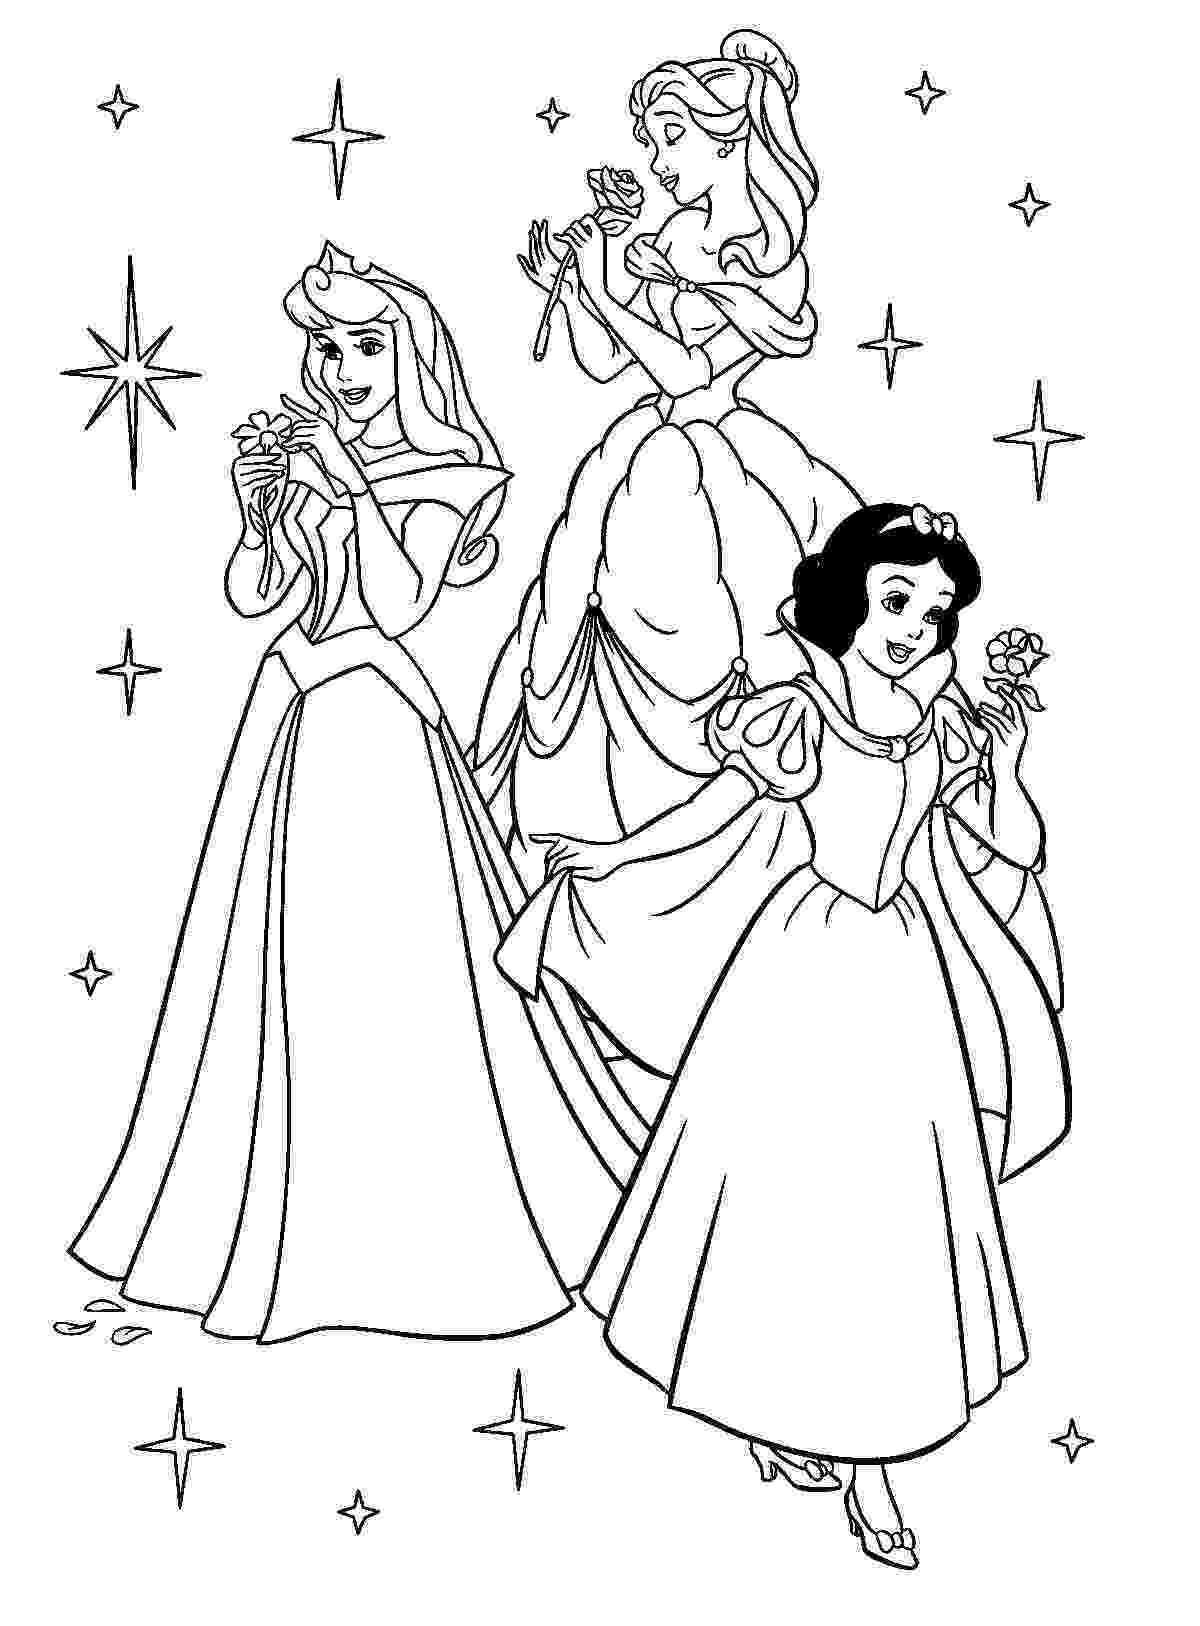 coloring pages for girls princess disney princess tiana coloring pages to girls for coloring princess girls pages